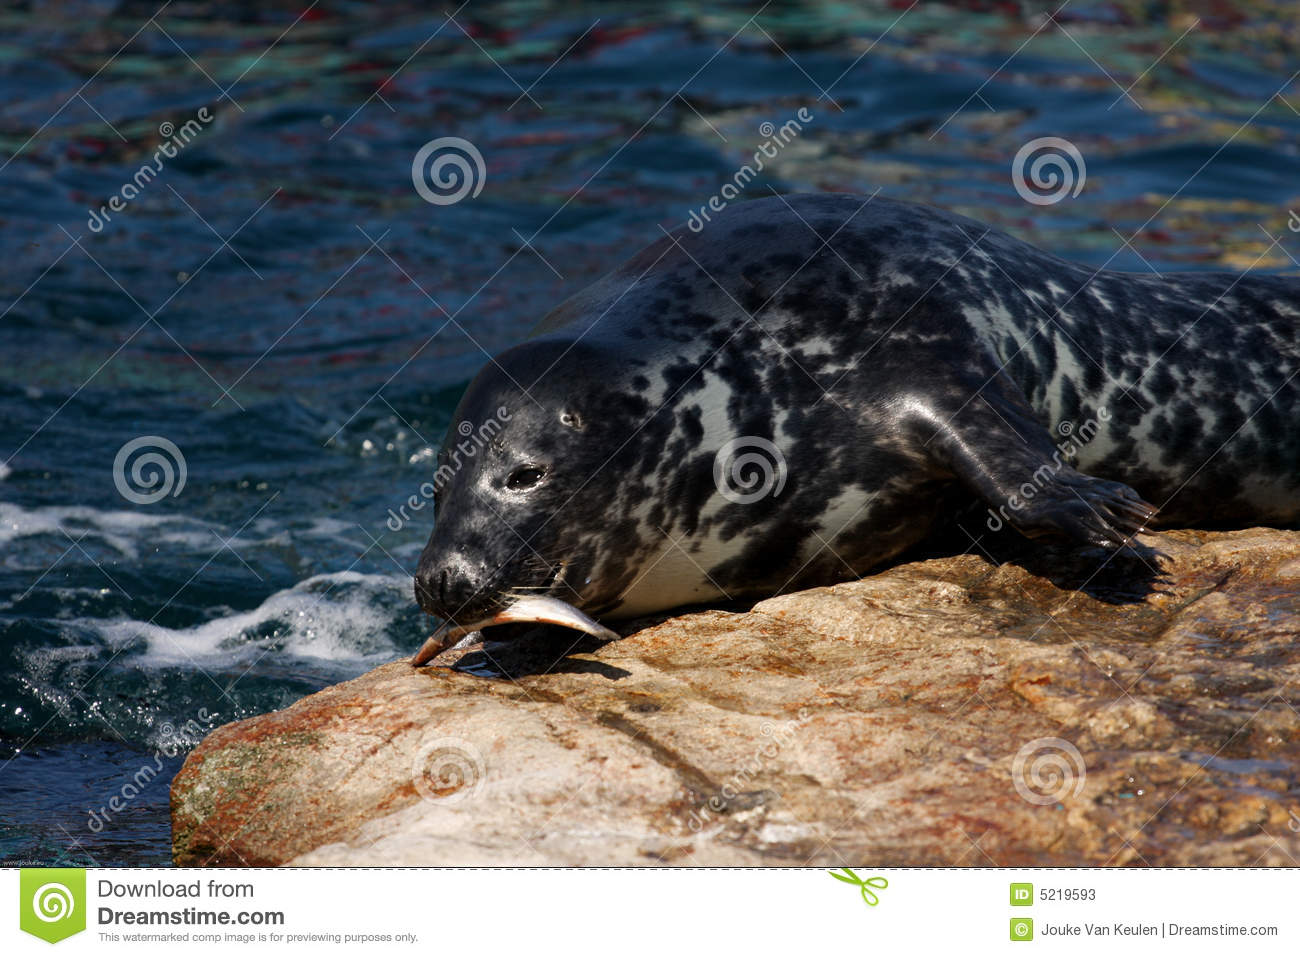 Seal eating fish stock photos image 5219593 for Dreaming of eating fish